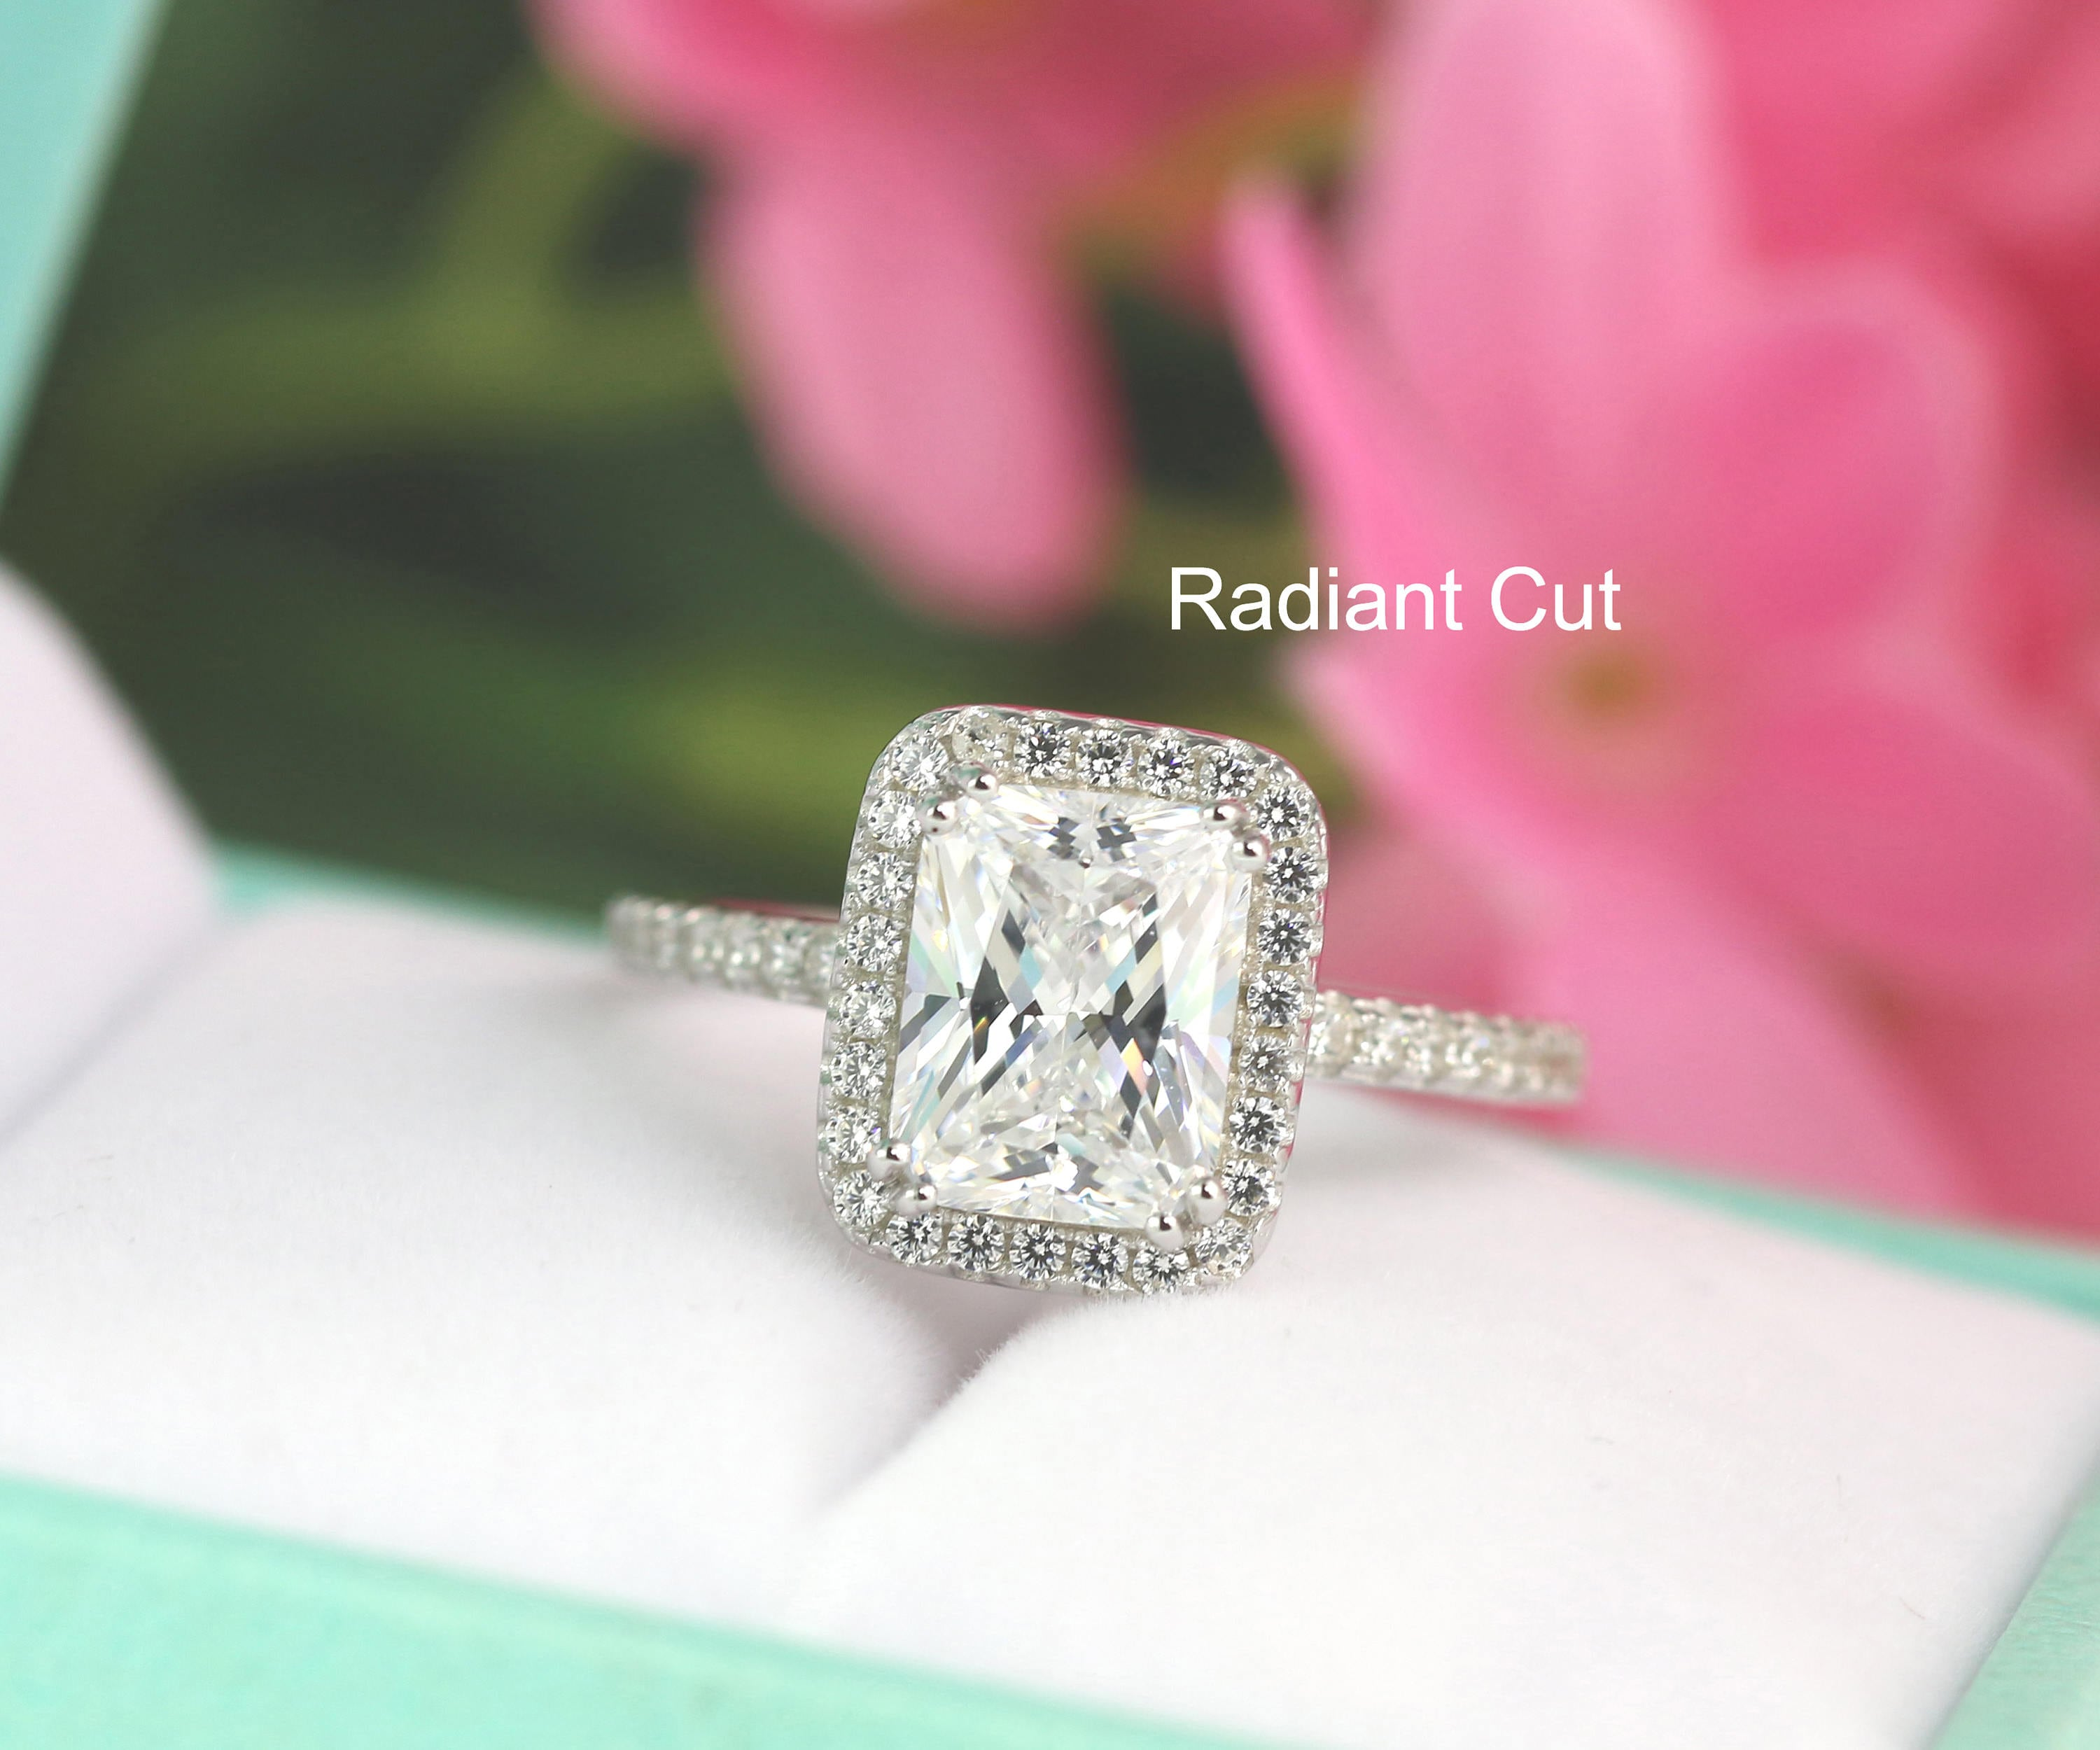 cut radiant elongated diamond ring ct rings watch youtube engagement